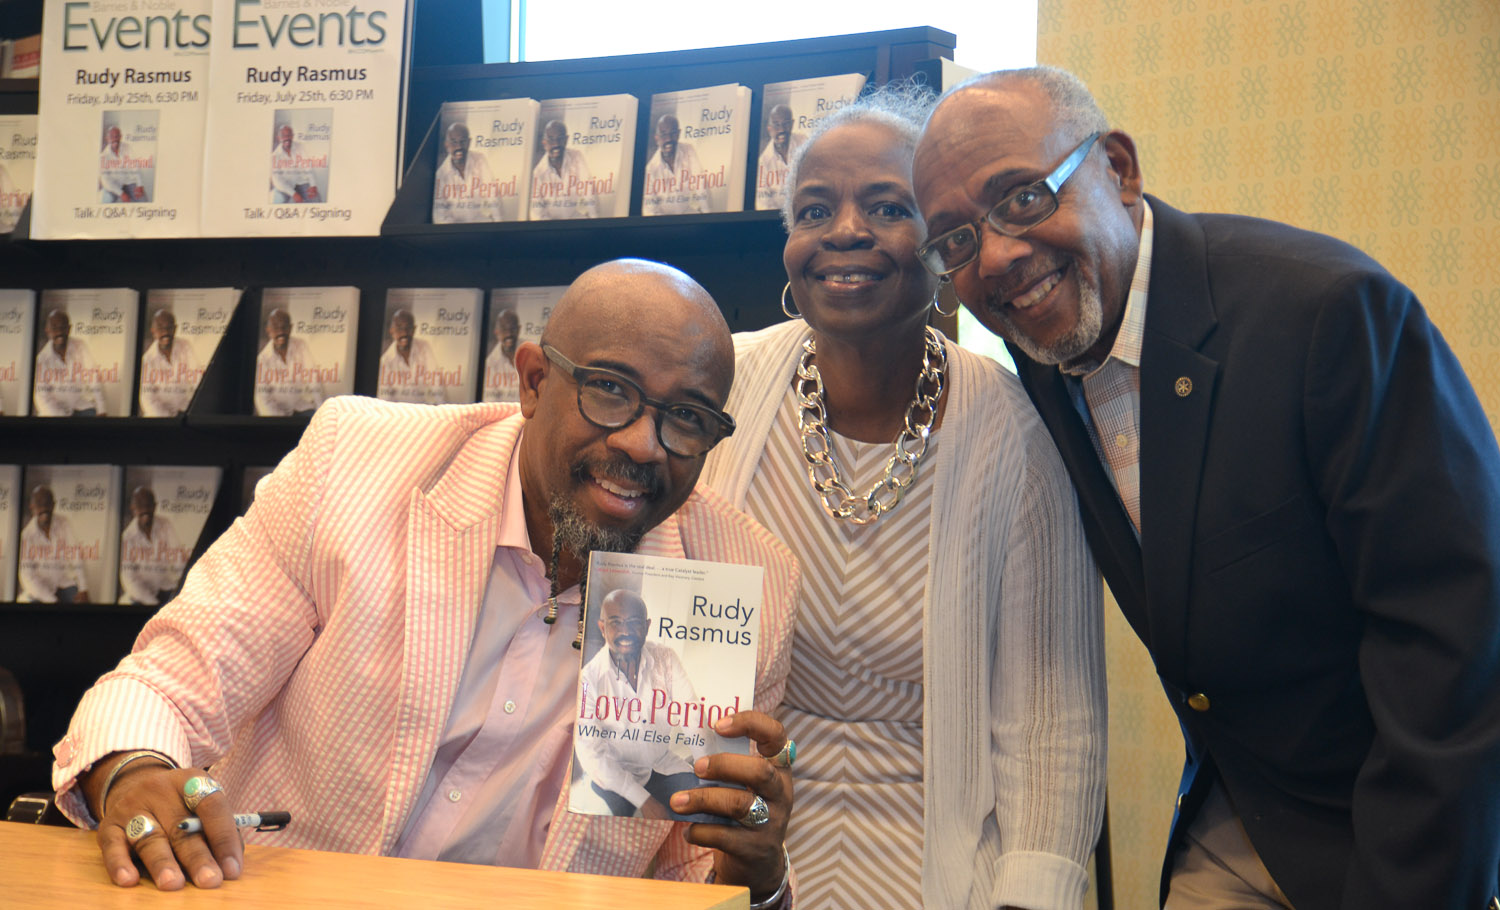 Paster Rudy book signing -0209.jpg